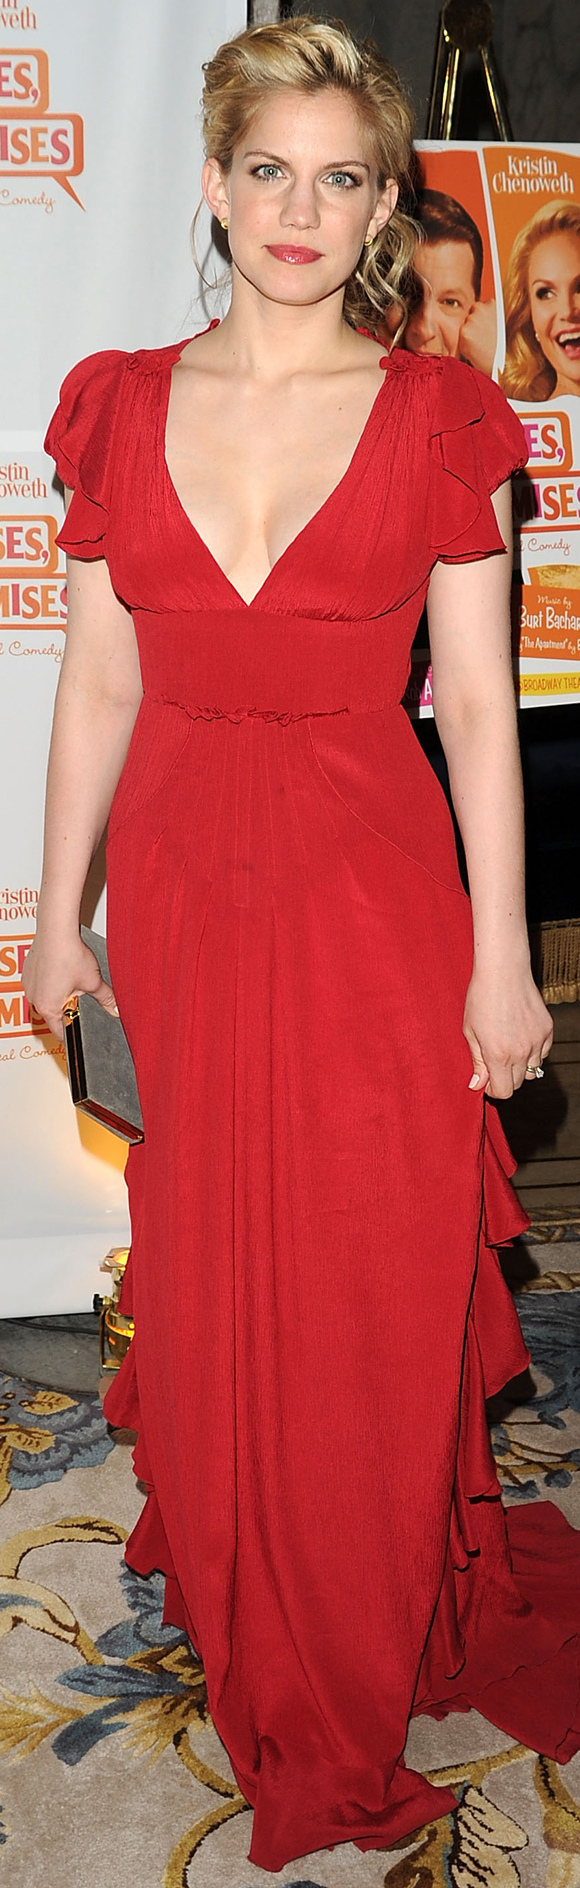 Anna chlumsky hot photos 2012 Chevrolet Impala Reviews and Rating Motor Trend